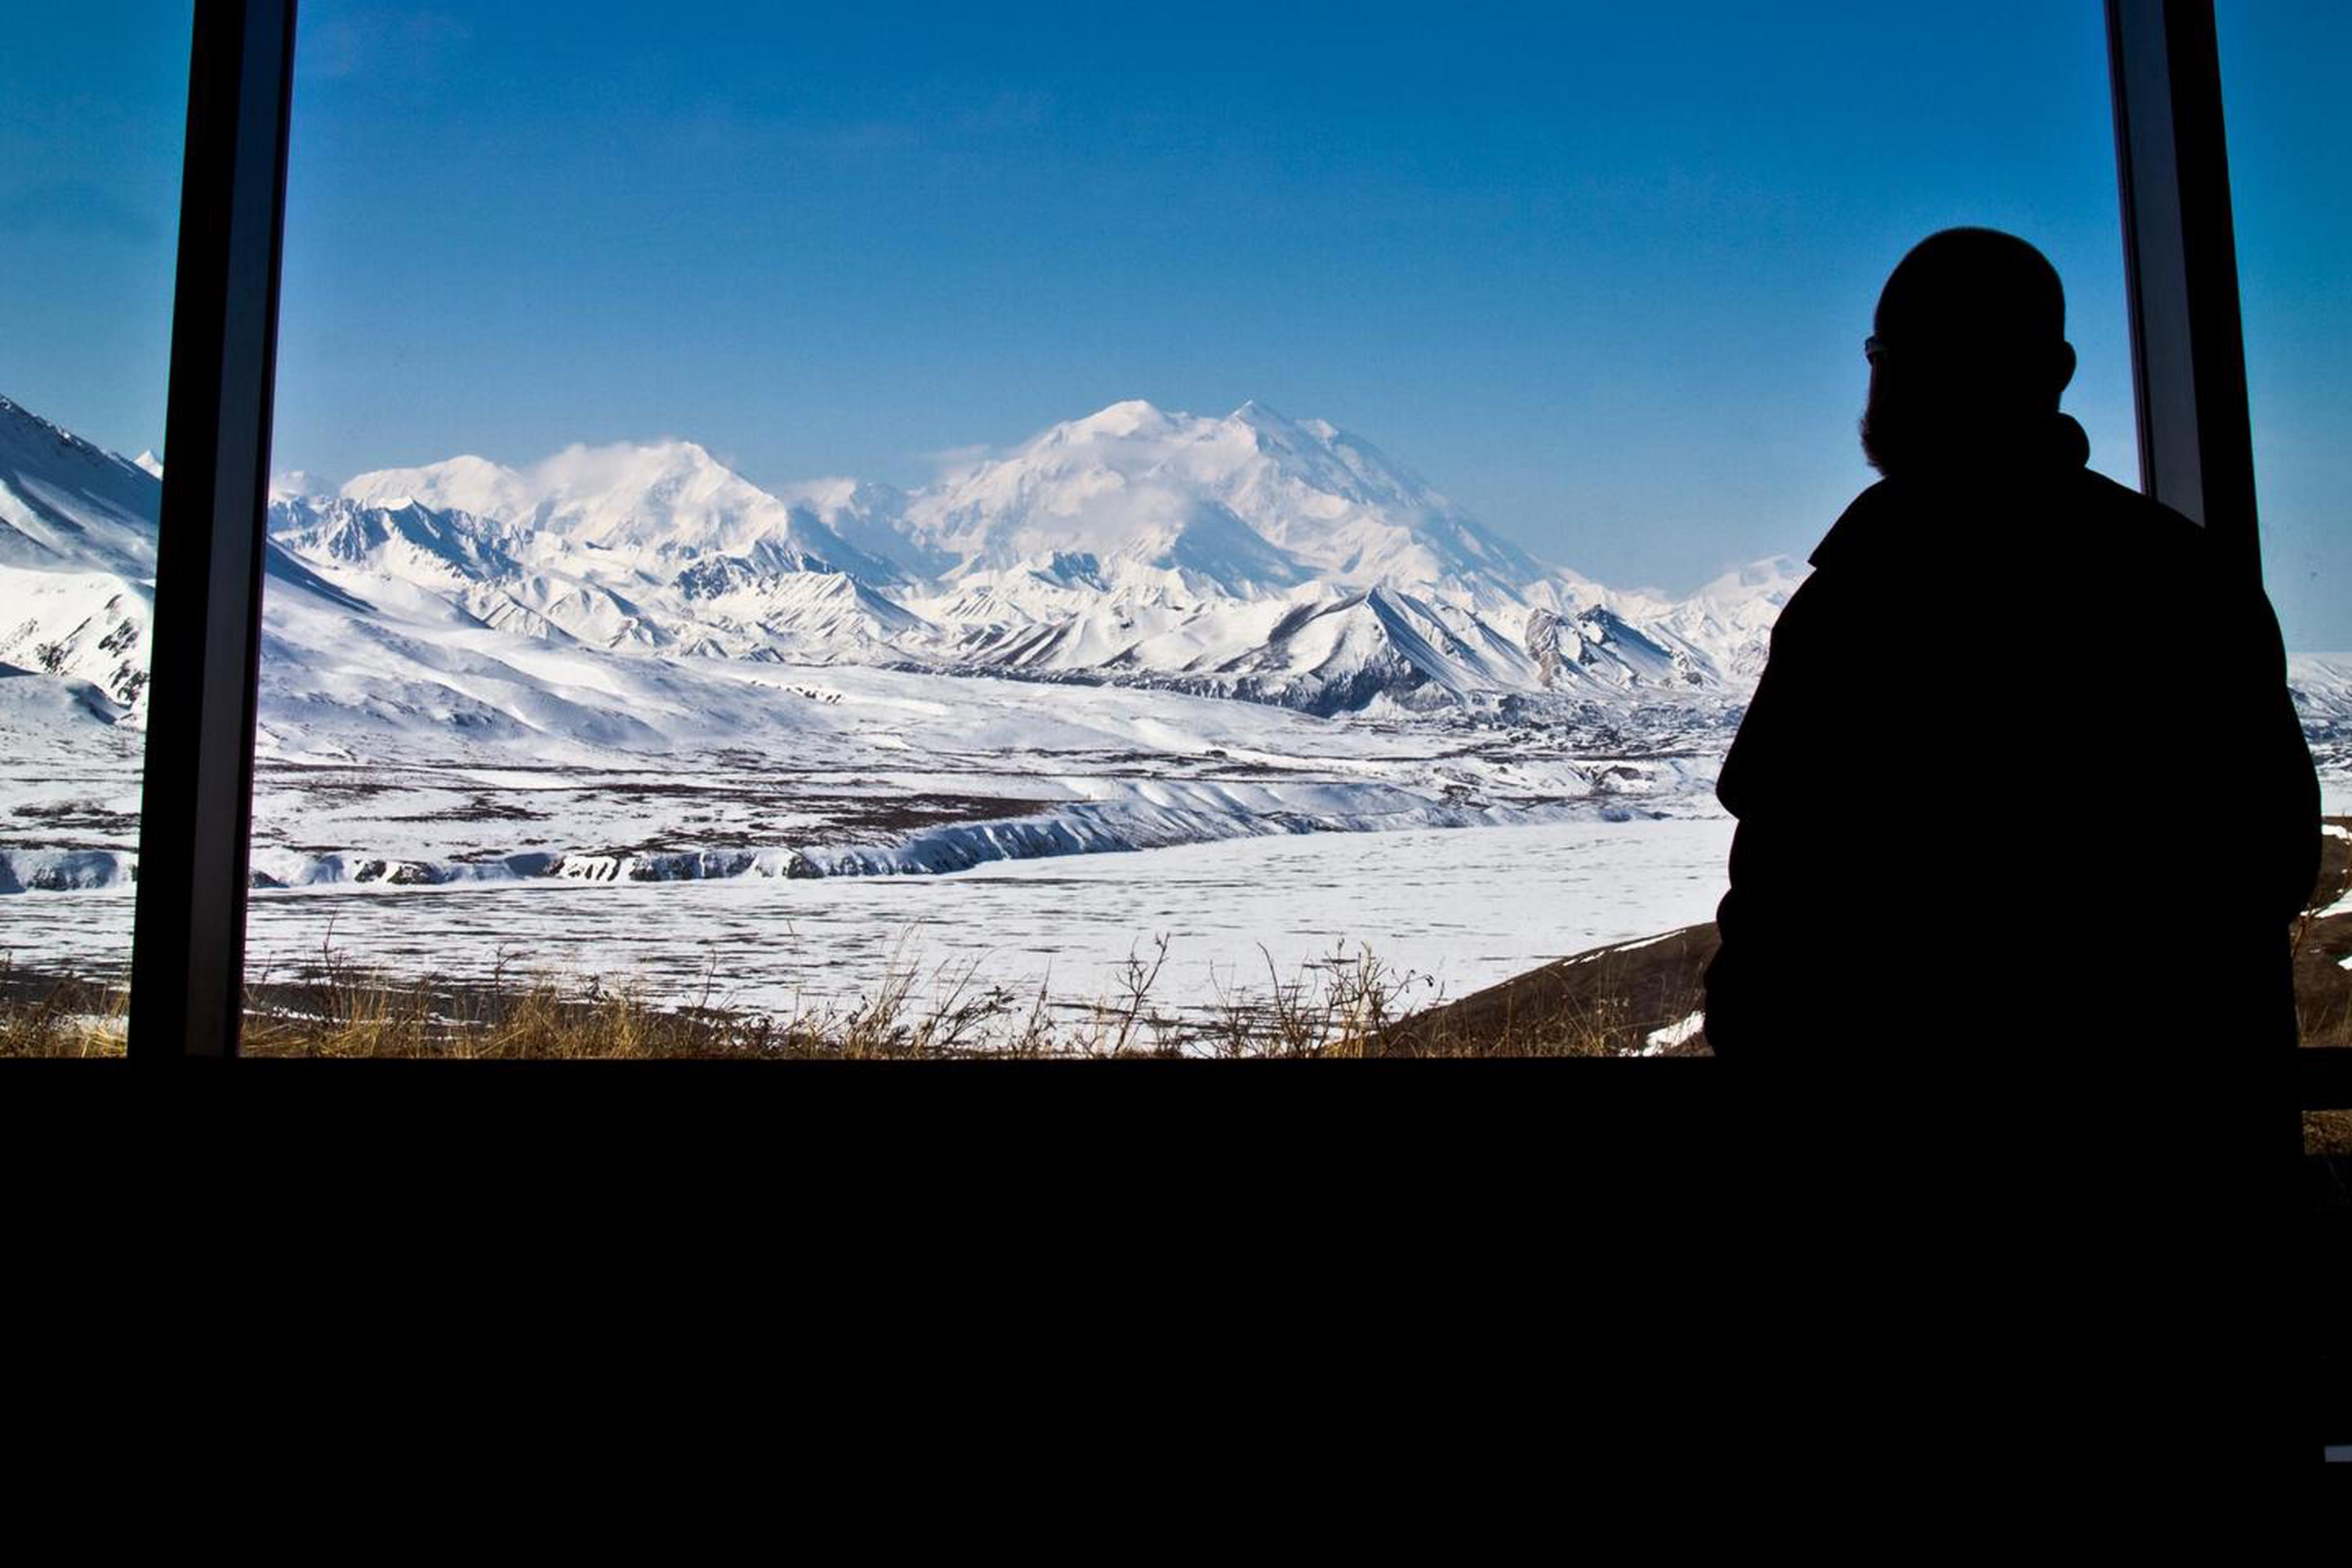 Eielson Visitor CenterThe view from Eielson Visitor Center features the snowy Alaska Range and North America's highest peak, Denali